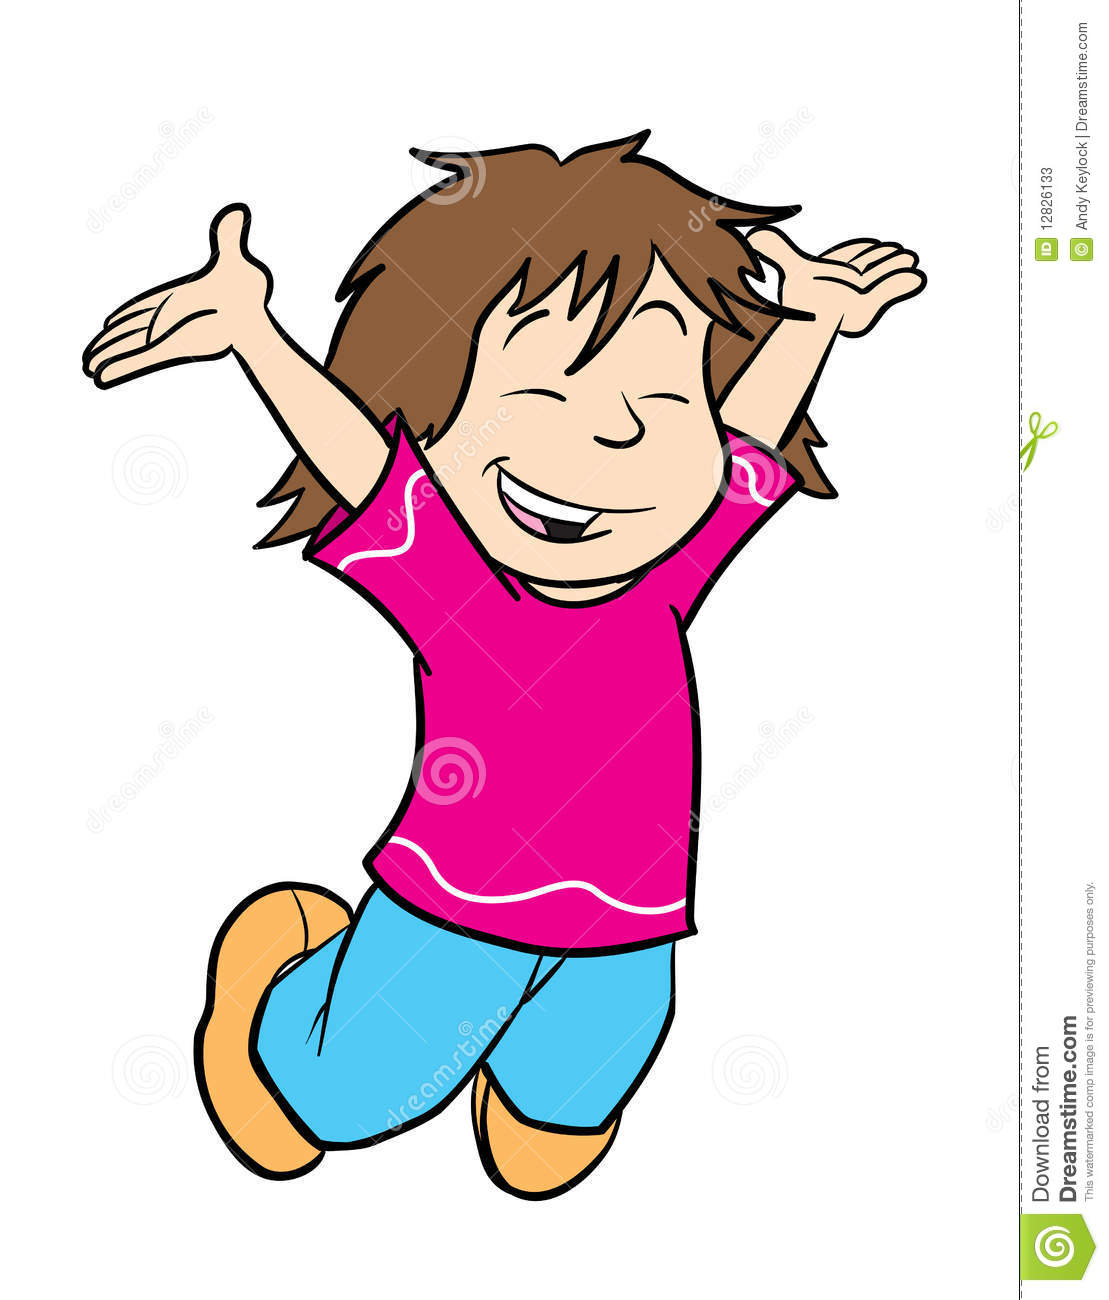 Cartoon Illustration Of A Cute Girl Jumping For Joy With Hands In The